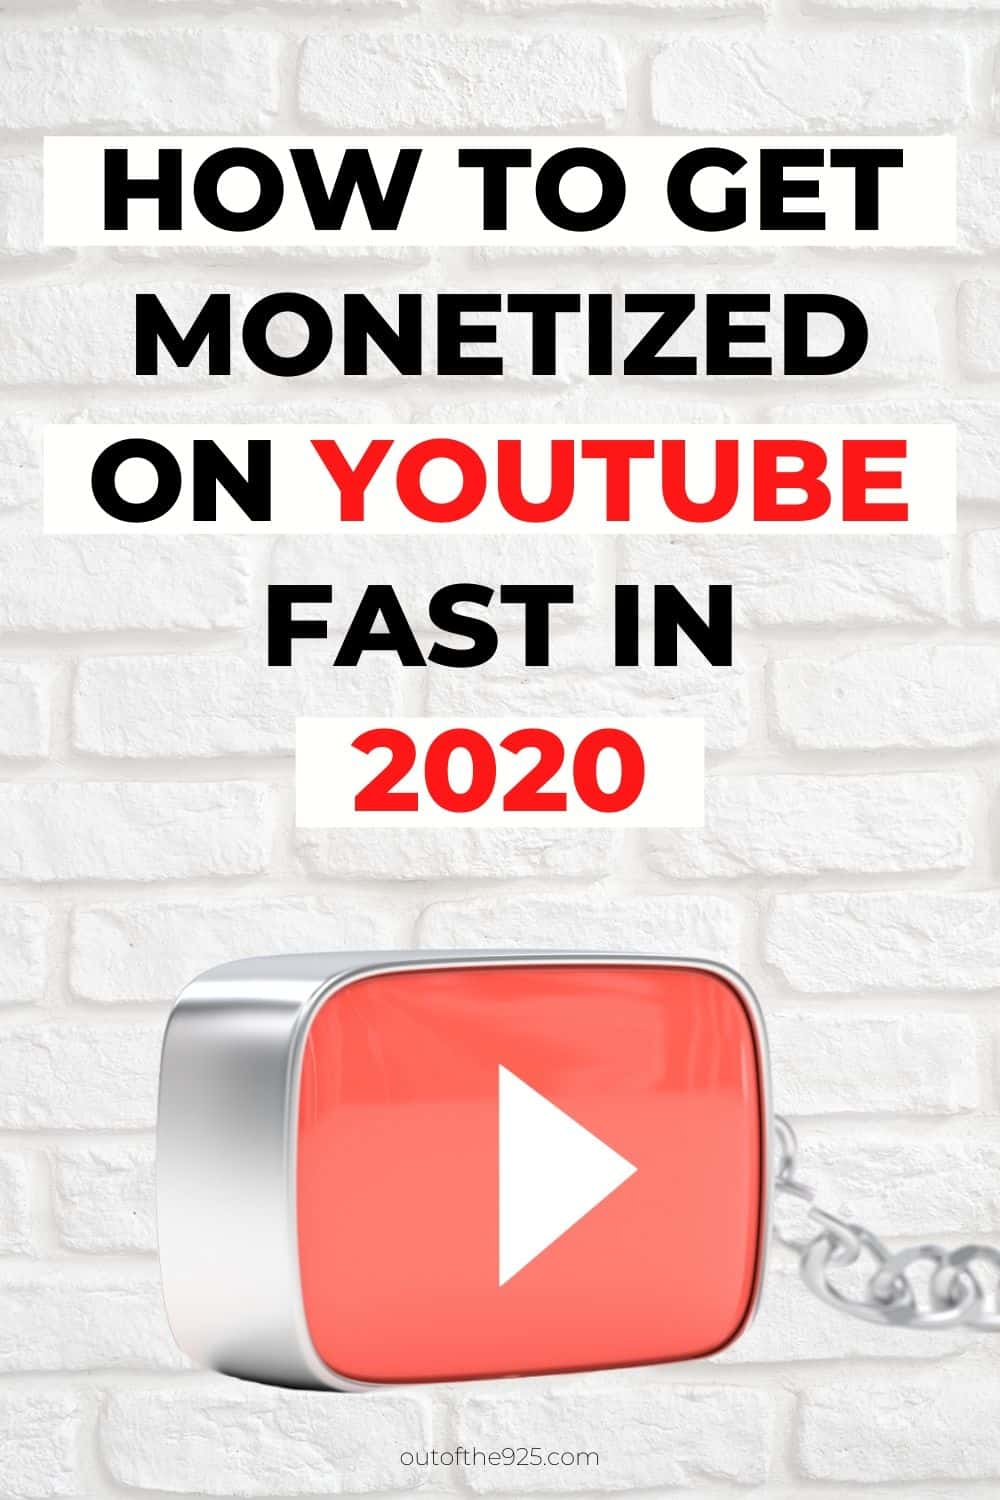 How to get monetized on YouTube FAST in 2020